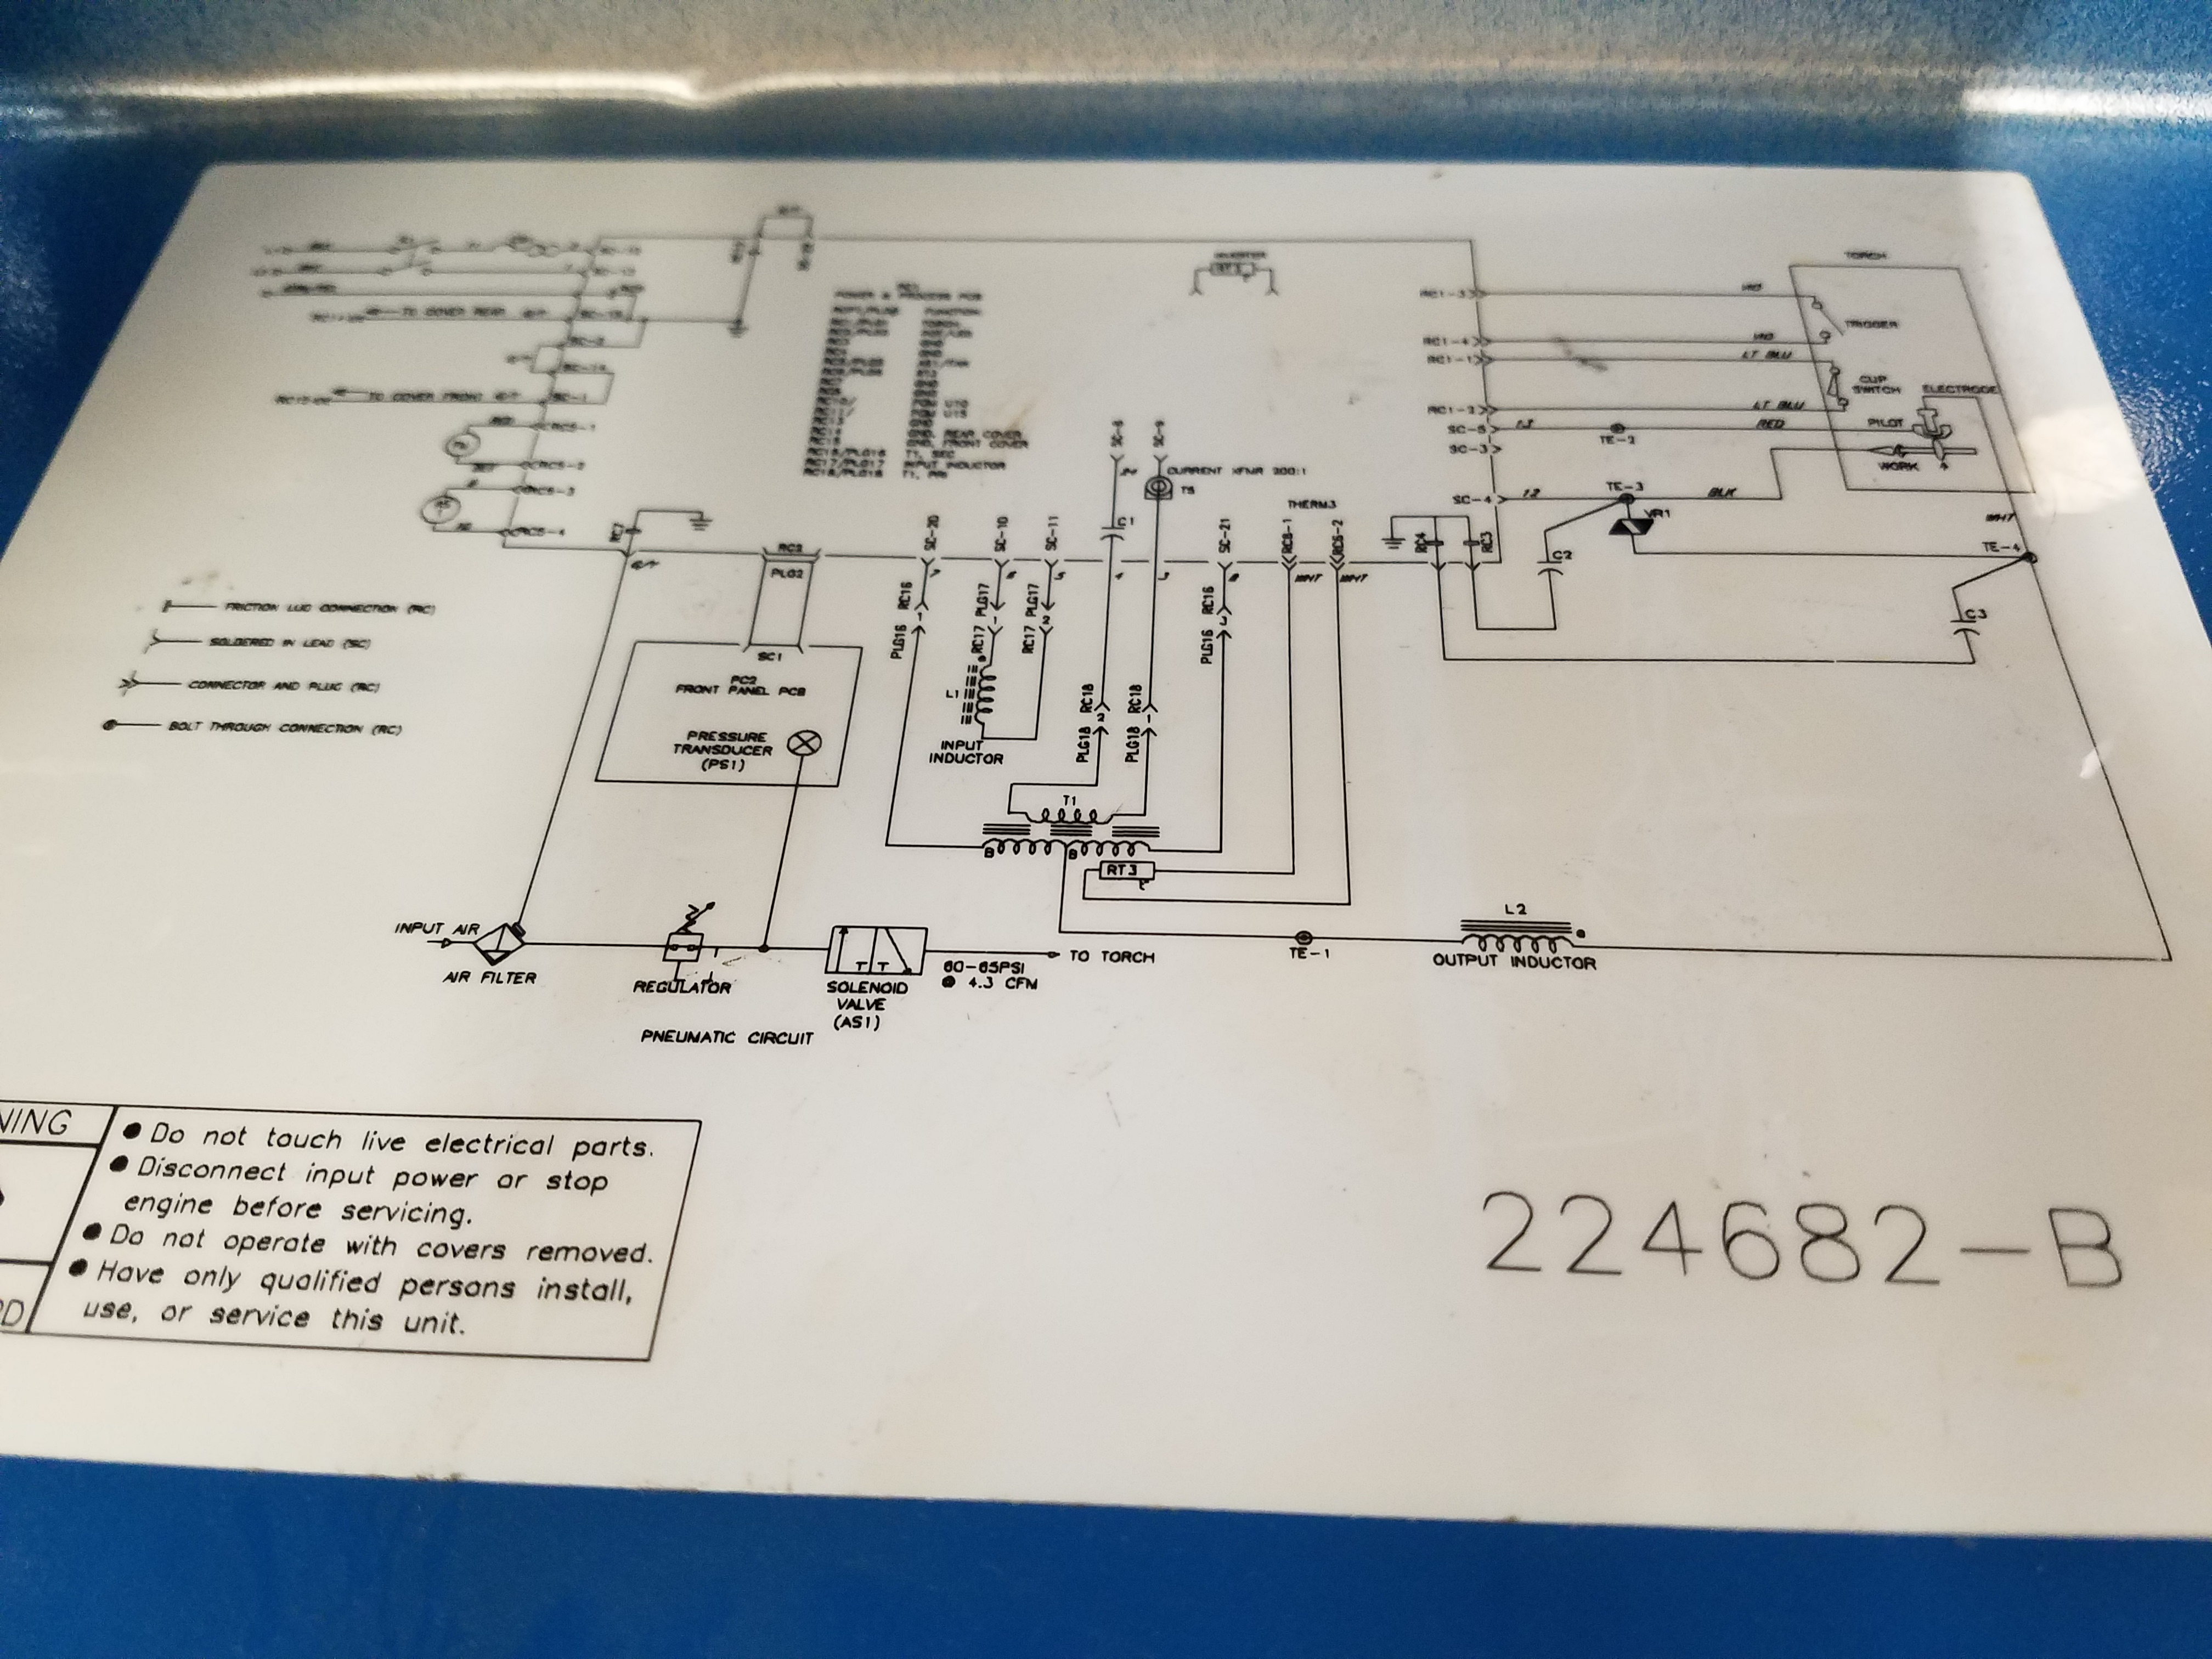 Miller Spectrum 375 >> Miller Spectrum 375 X-treme Plasma Cutter.. Teardown / Repair Complete!! & Schematics!! – The ...